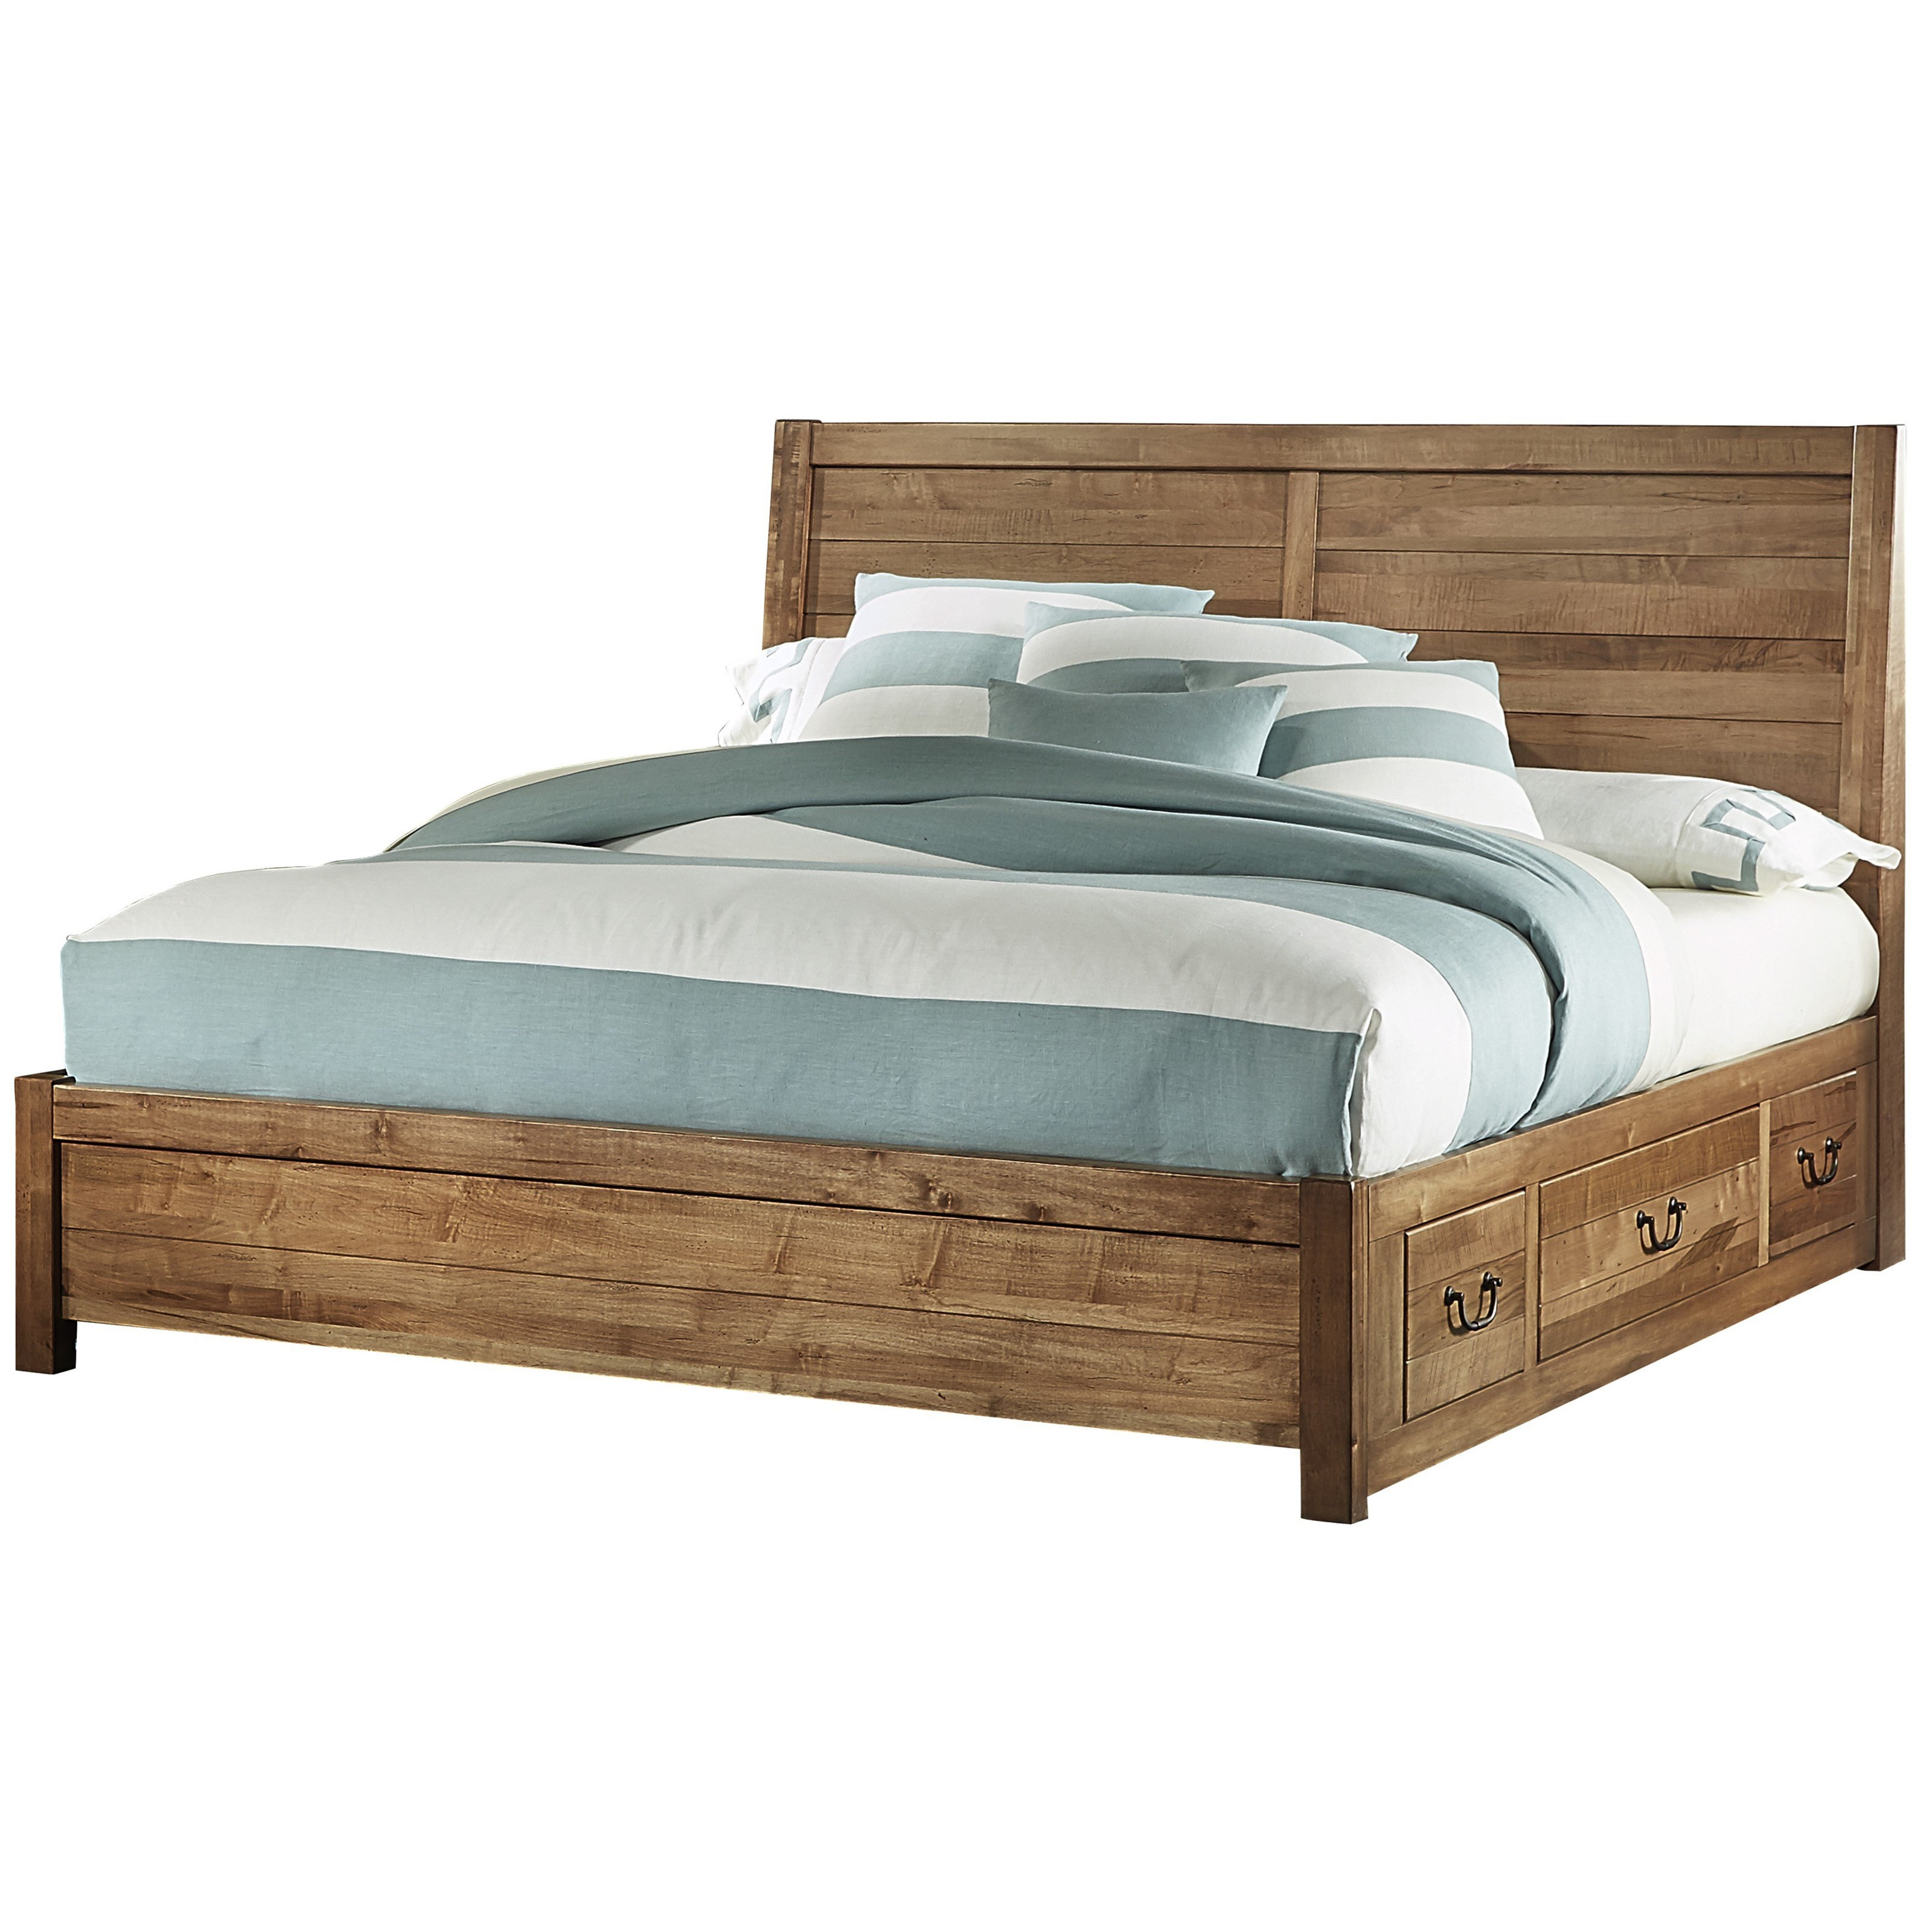 Sedgwick Queen Panel 6 Drawer Storage Bed